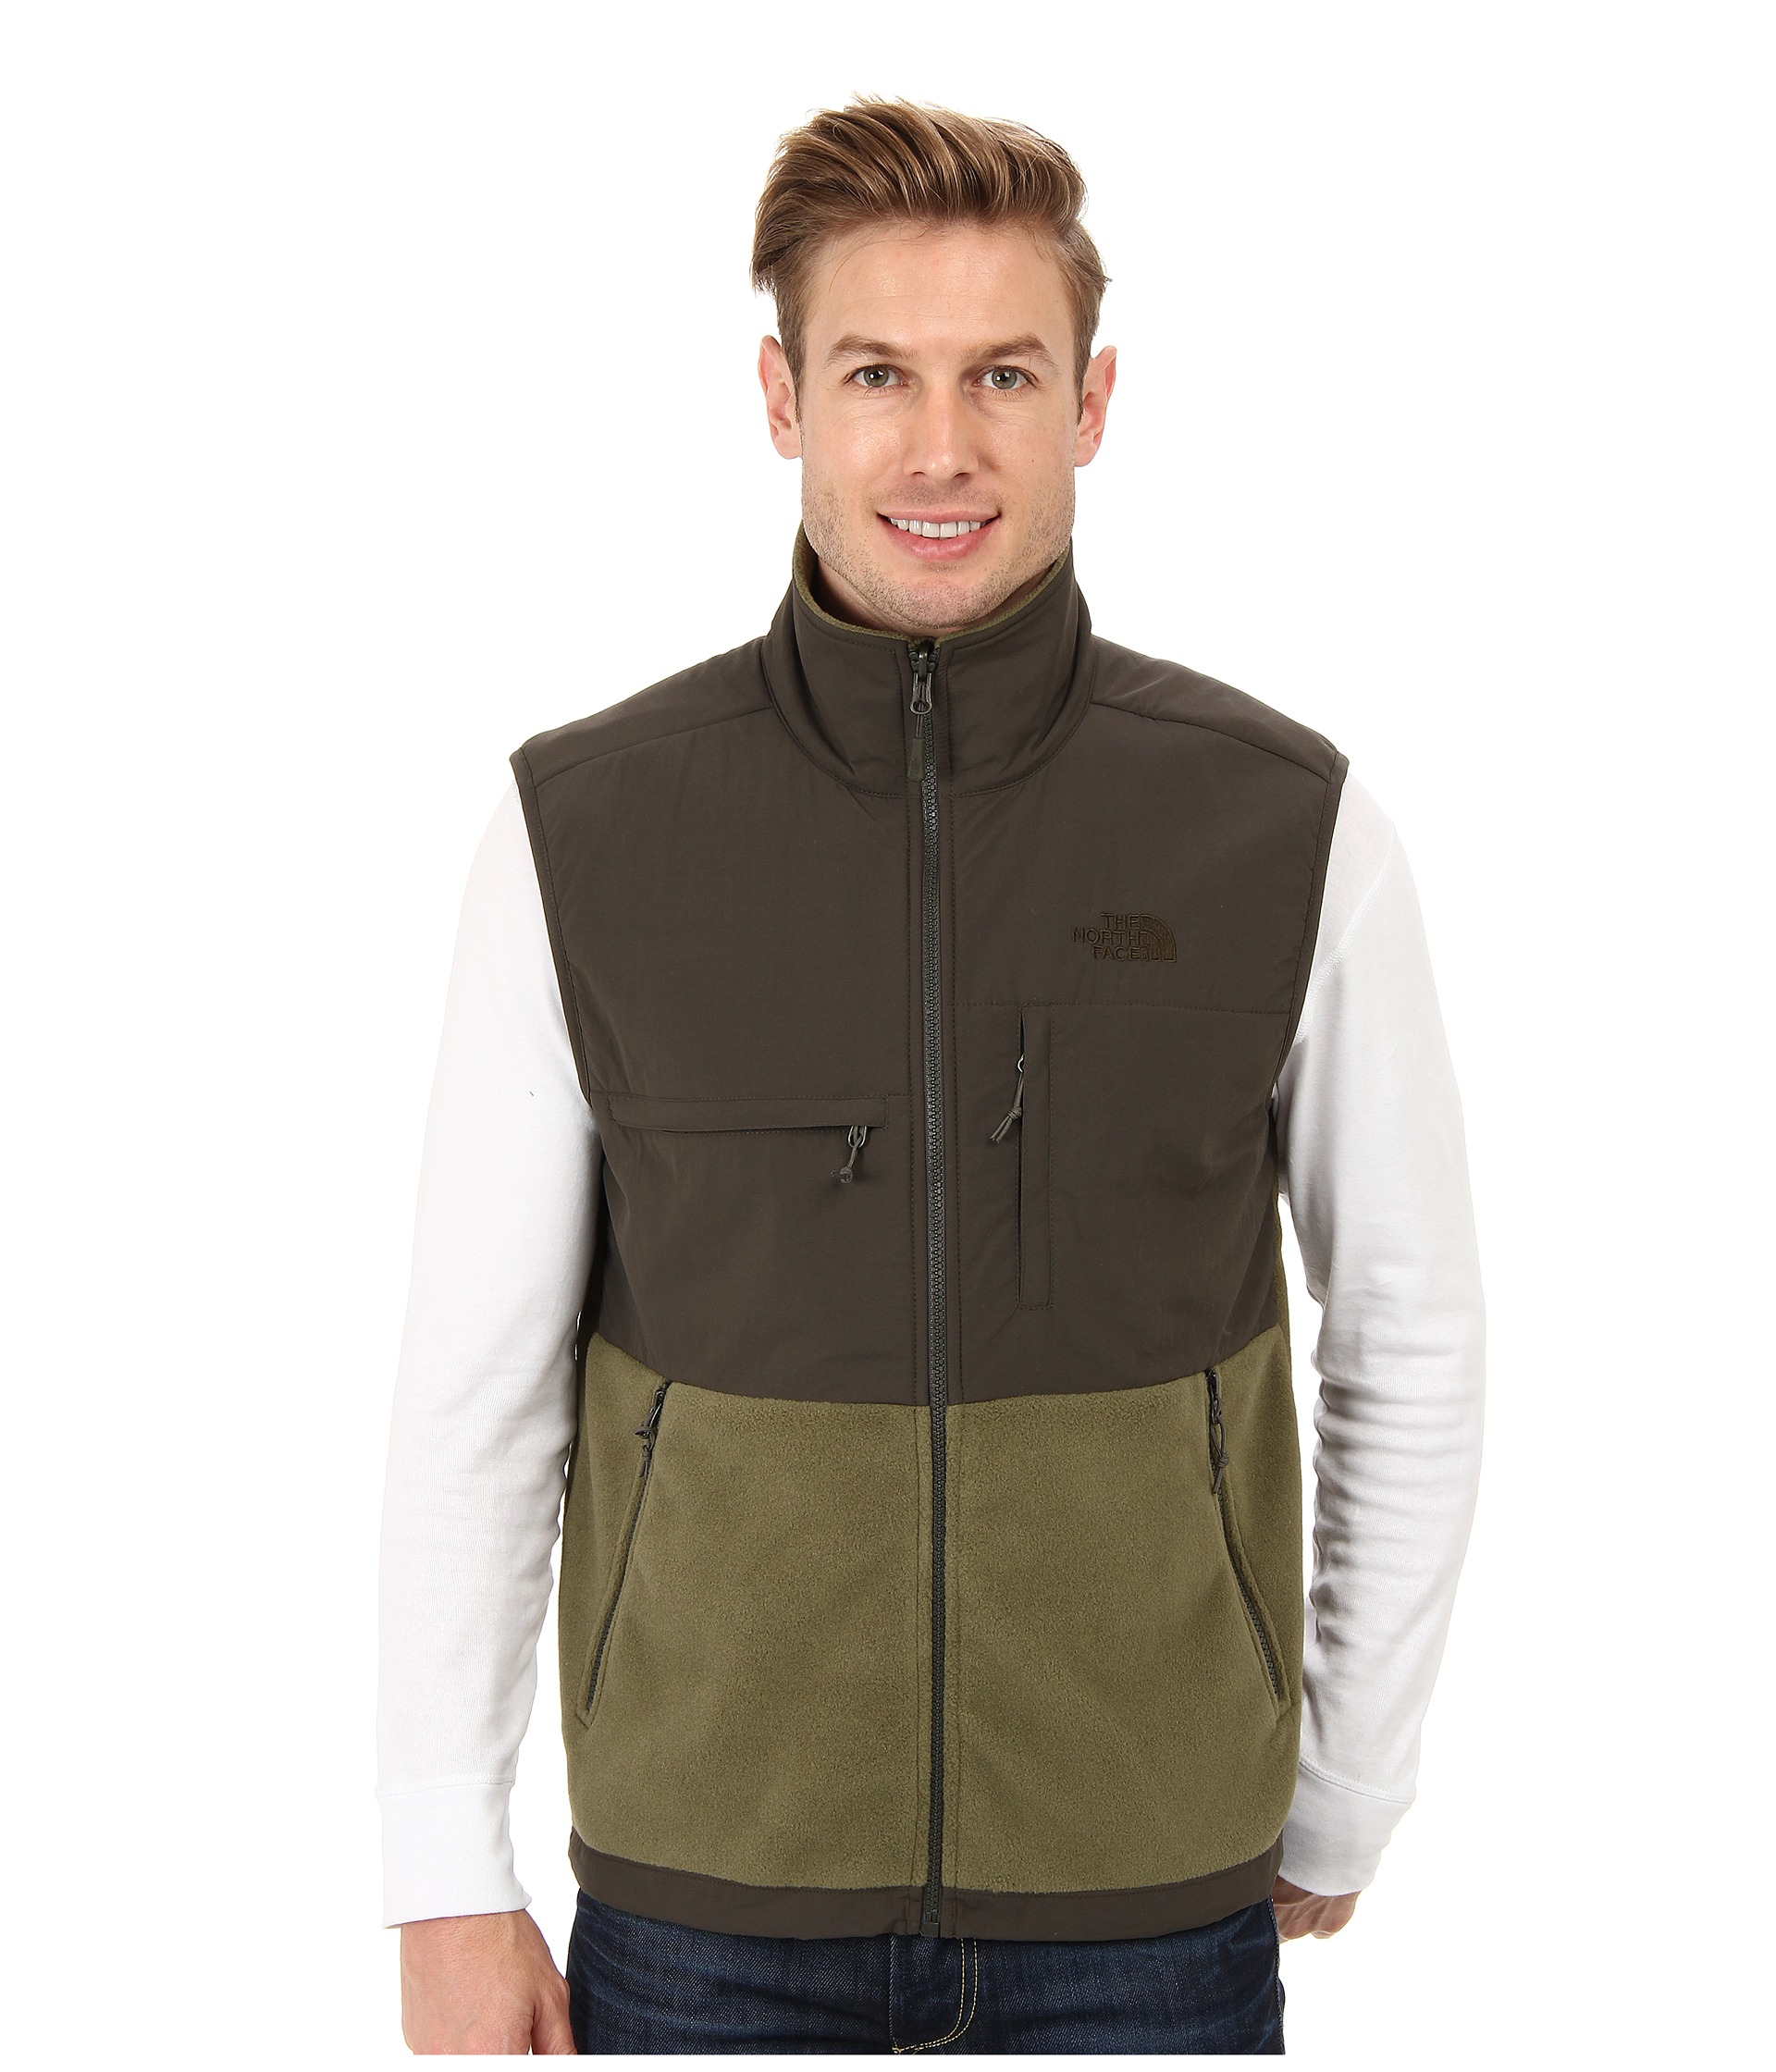 259e5f40825b ... discount code for lyst the north face denali vest in green for men  183c2 82efc